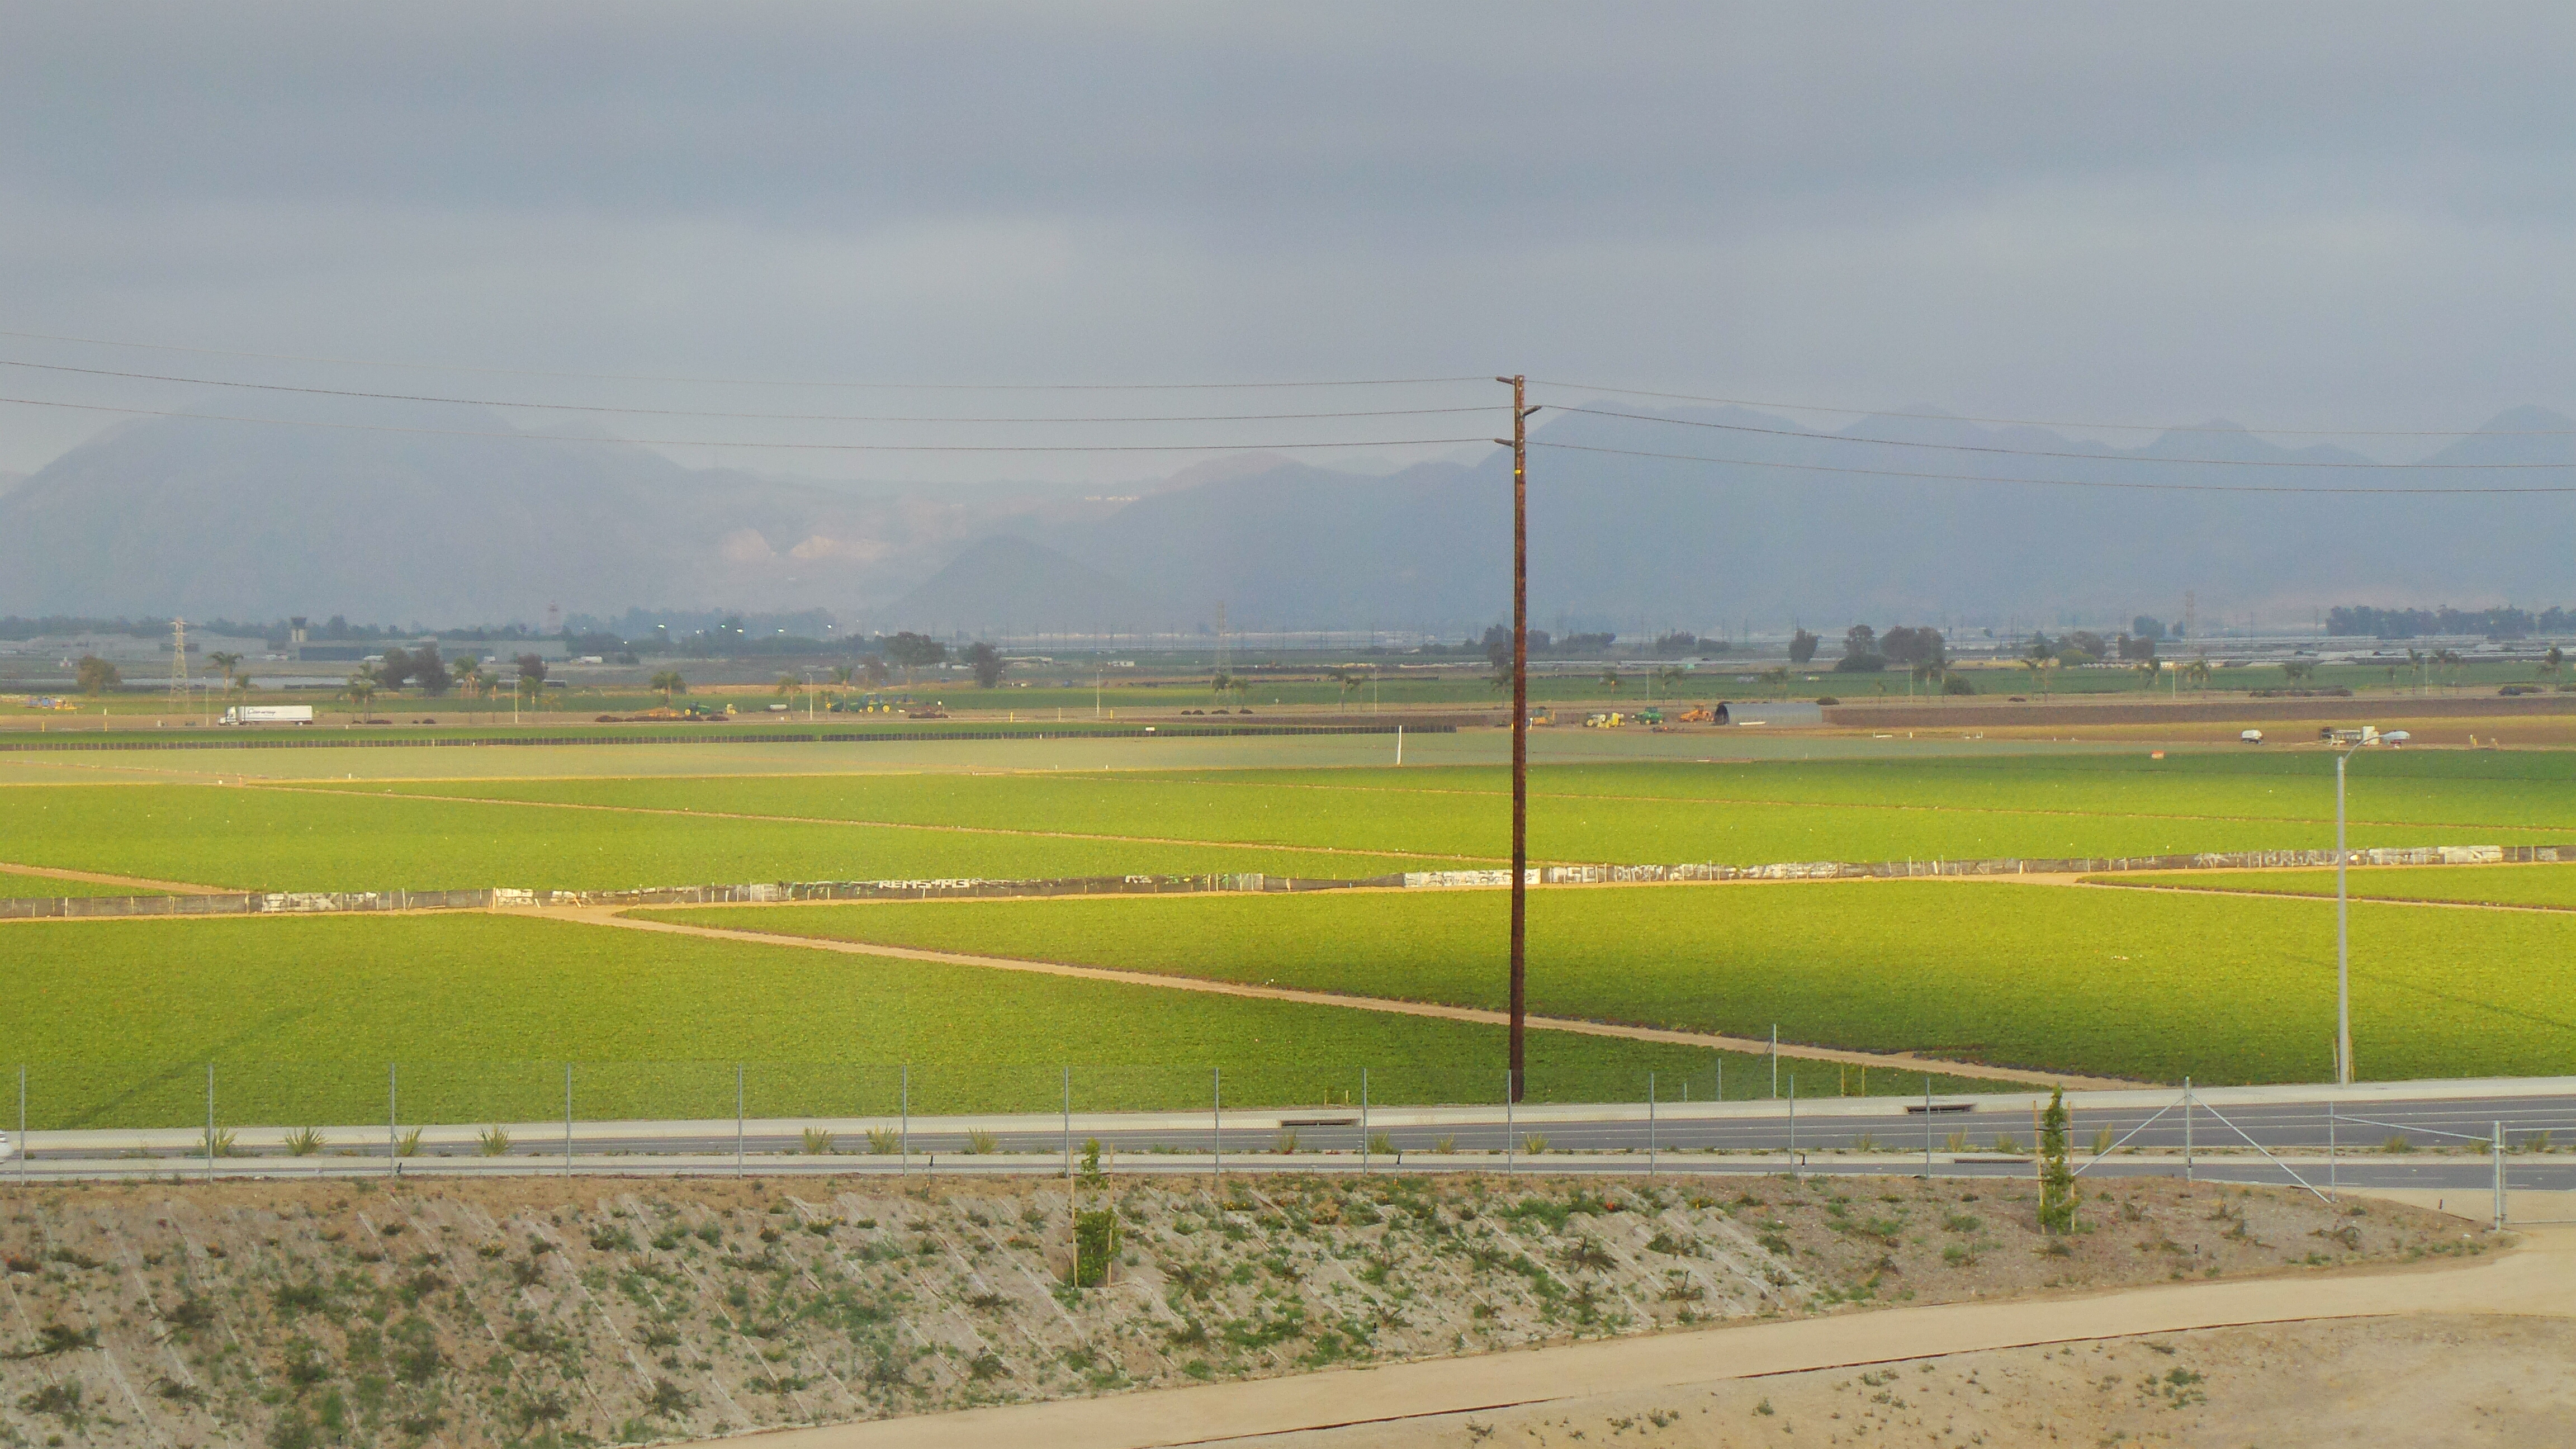 Strawberry Fields in Oxnard California from Hilton Garden Inn Window